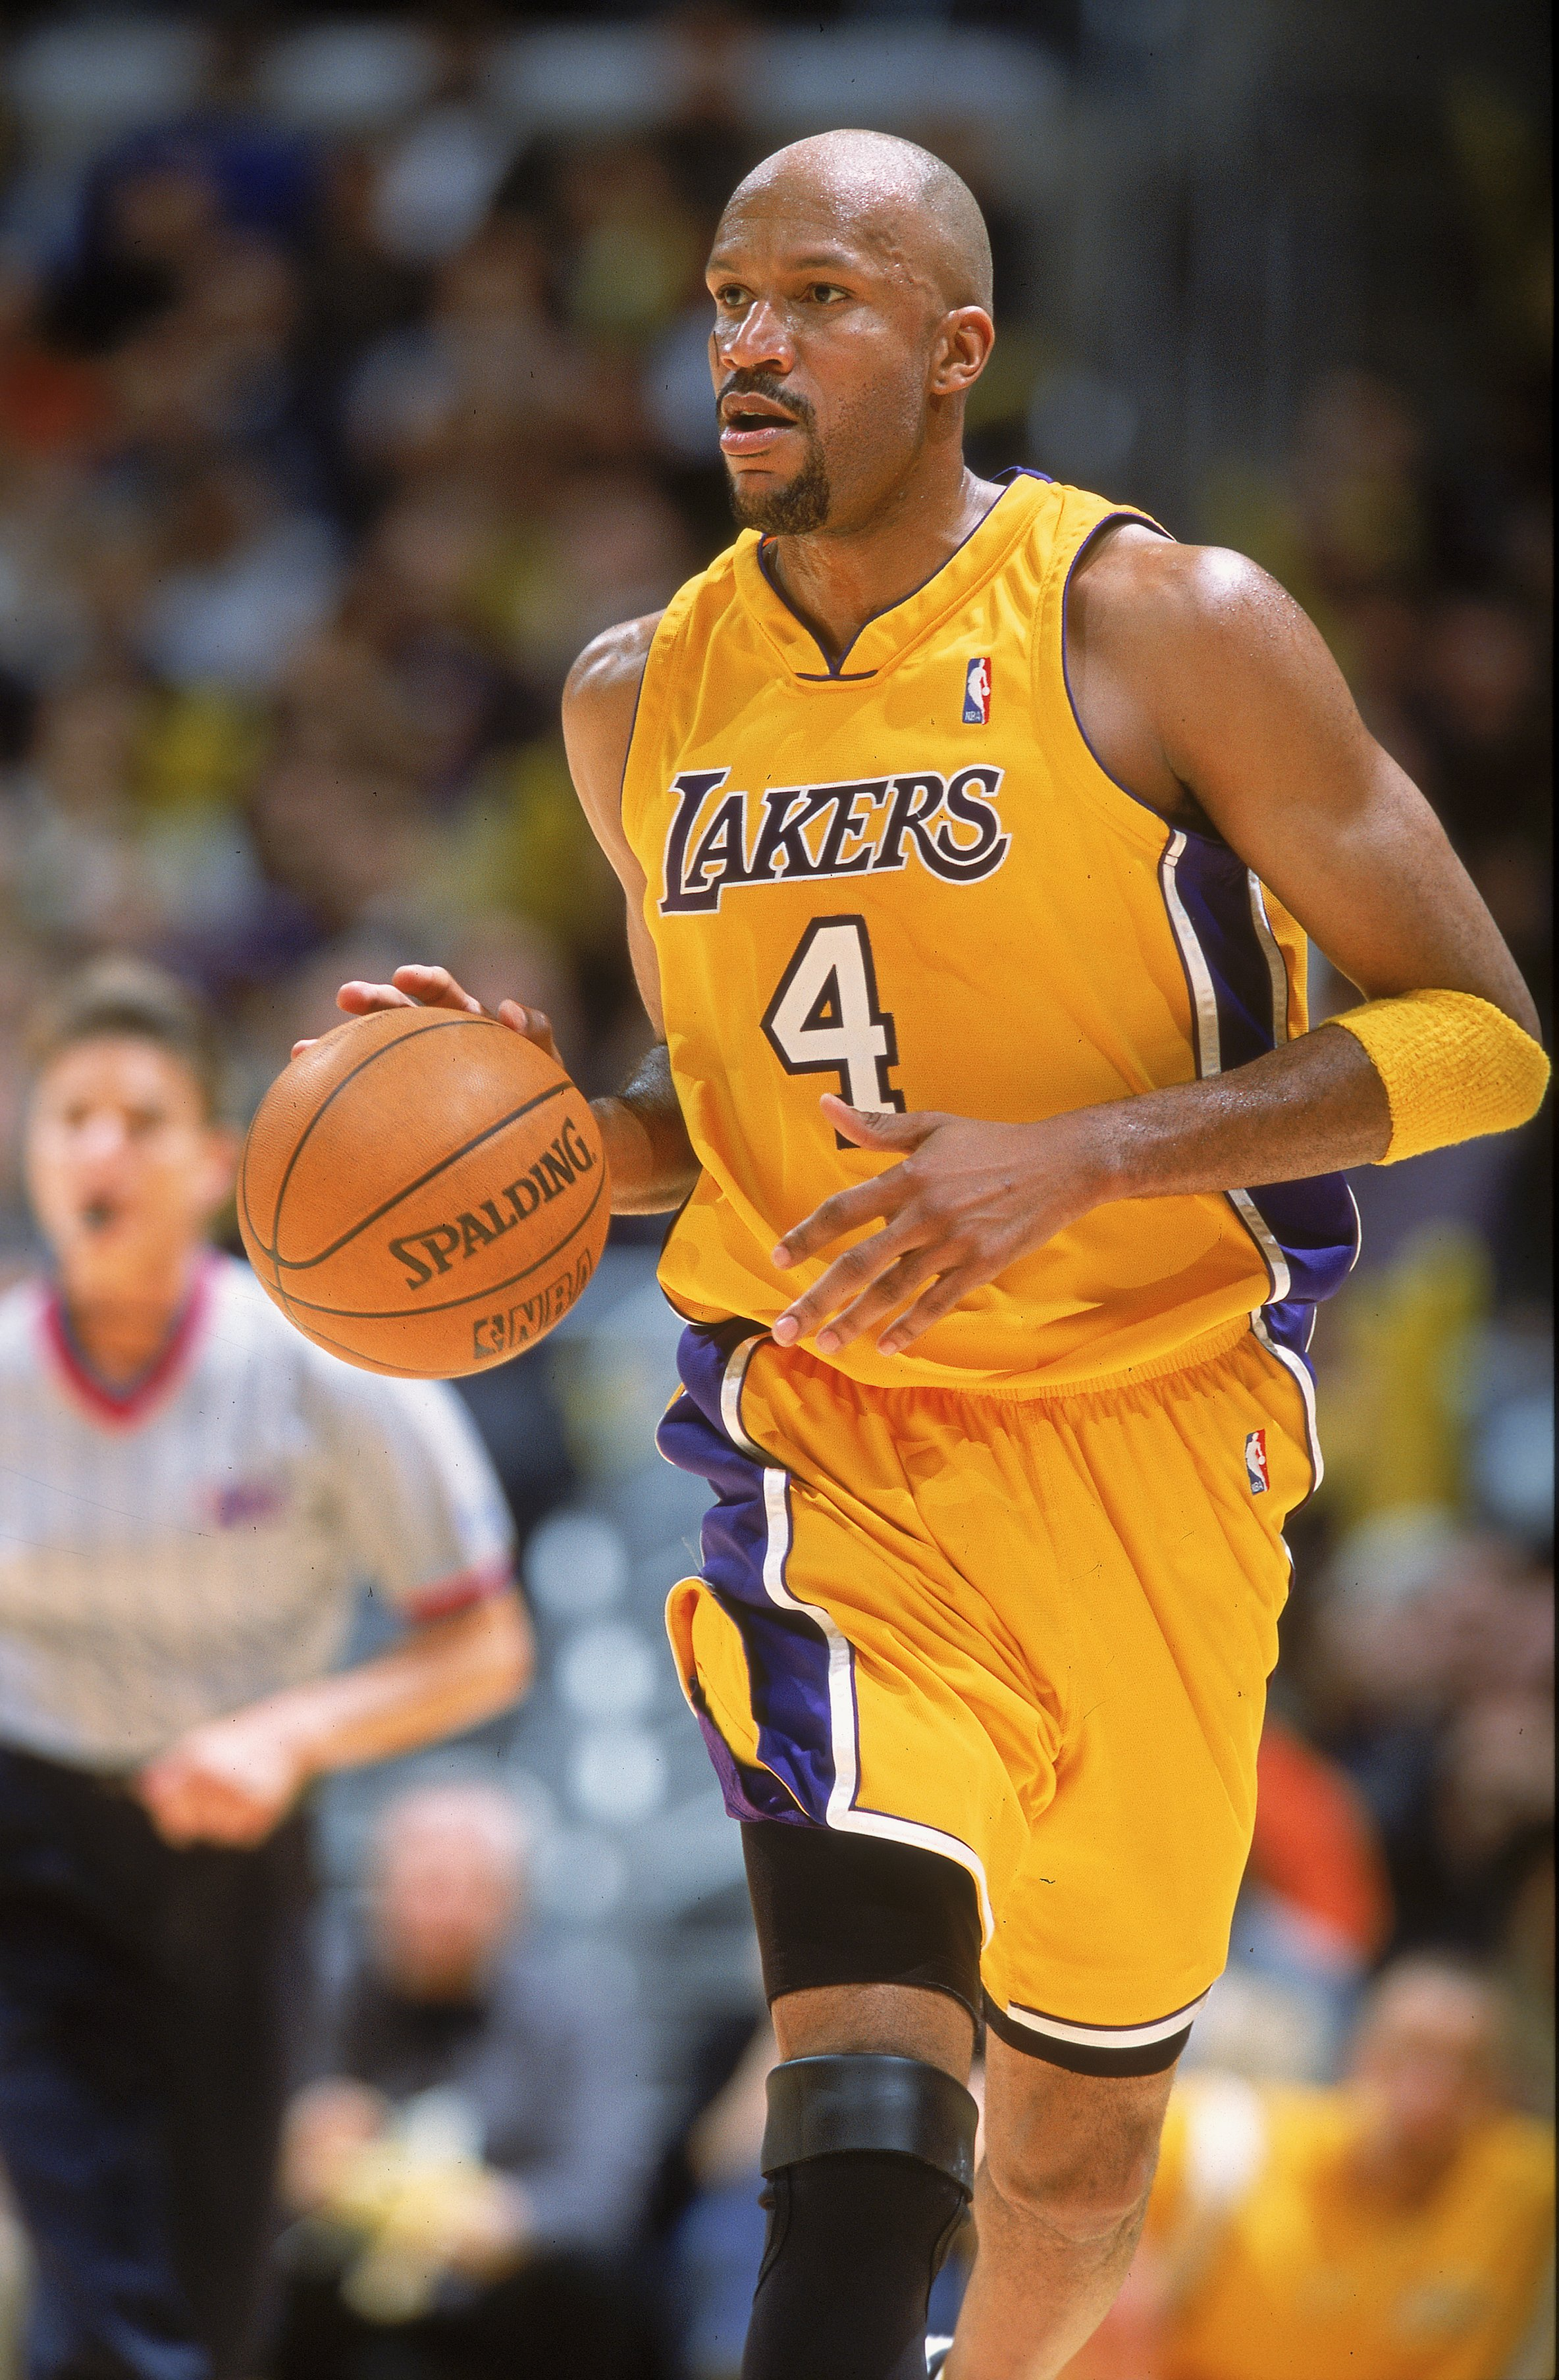 7 Feb 2001:  Ron Harper #4 of the Los Angeles Lakers dribbles the ball down the court during the game against the Phoenix Sun at the STAPLES Center in Los Angeles, California.  The Lakers defeated the Suns 85-83.   NOTE TO USER: It is expressly understood